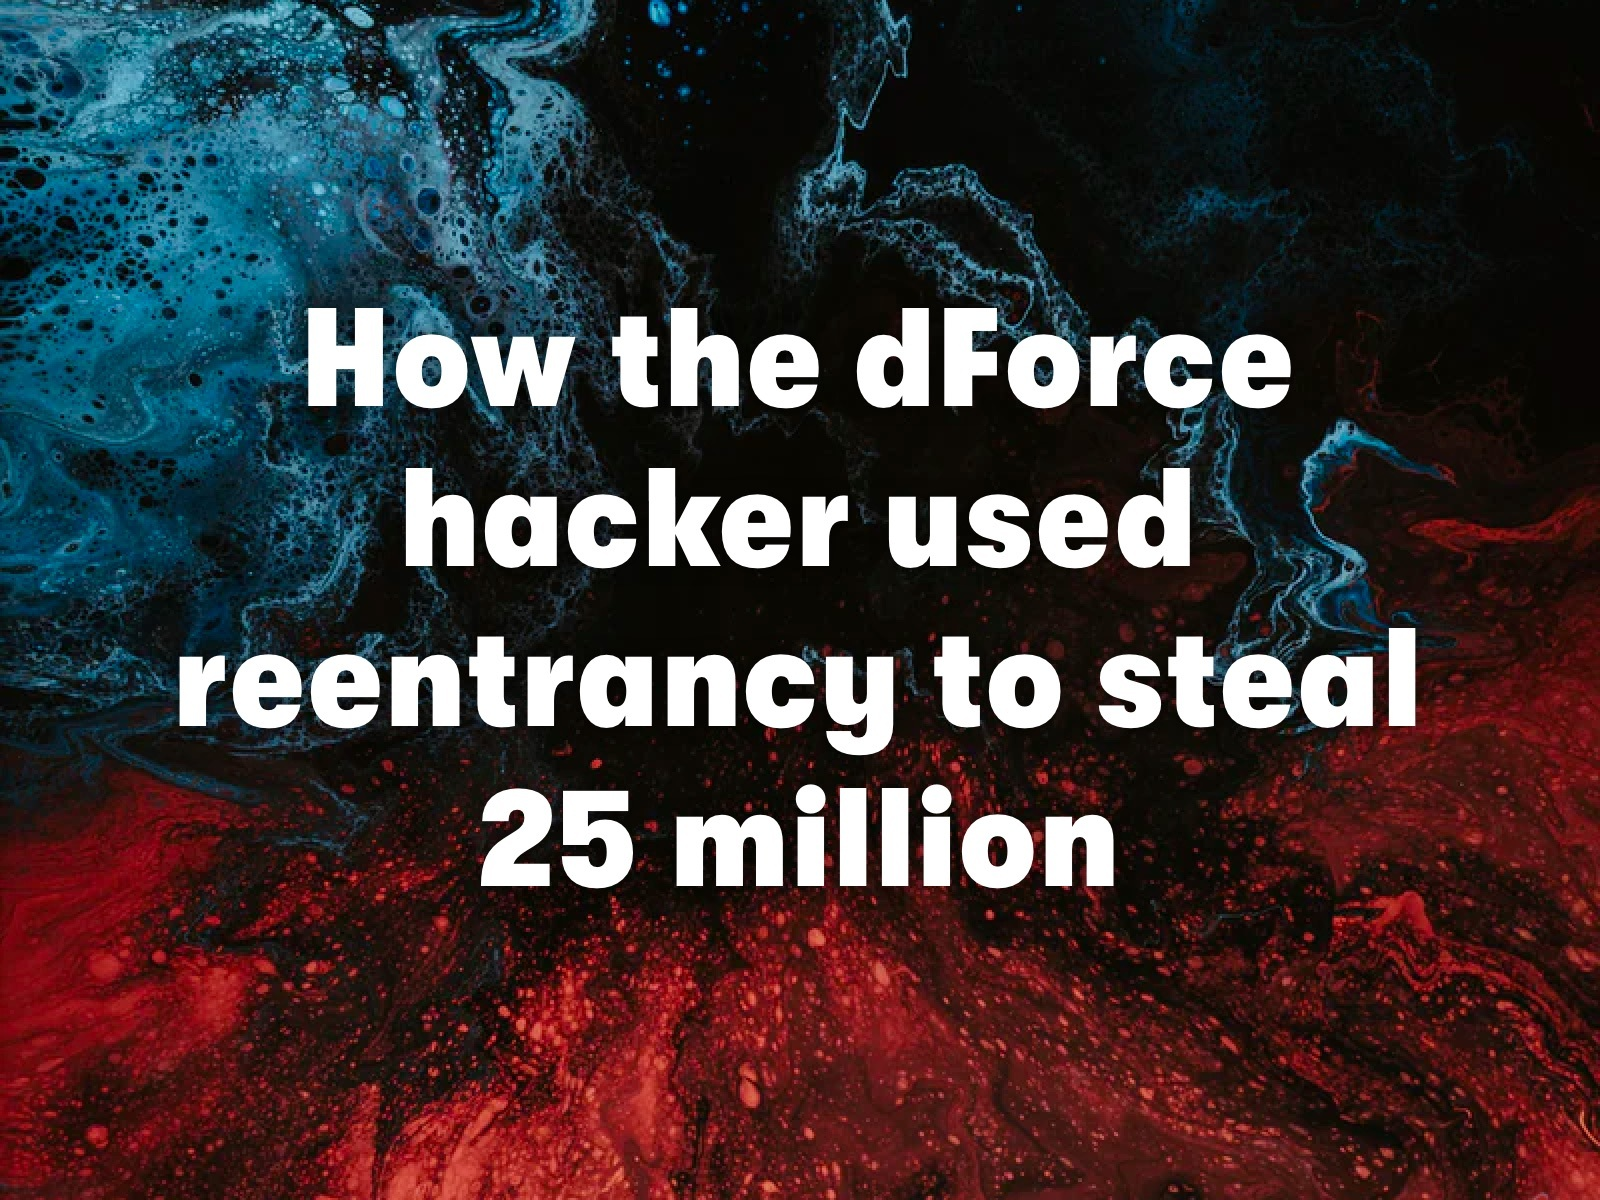 How the dForce hacker used reentrancy to steal 25 million